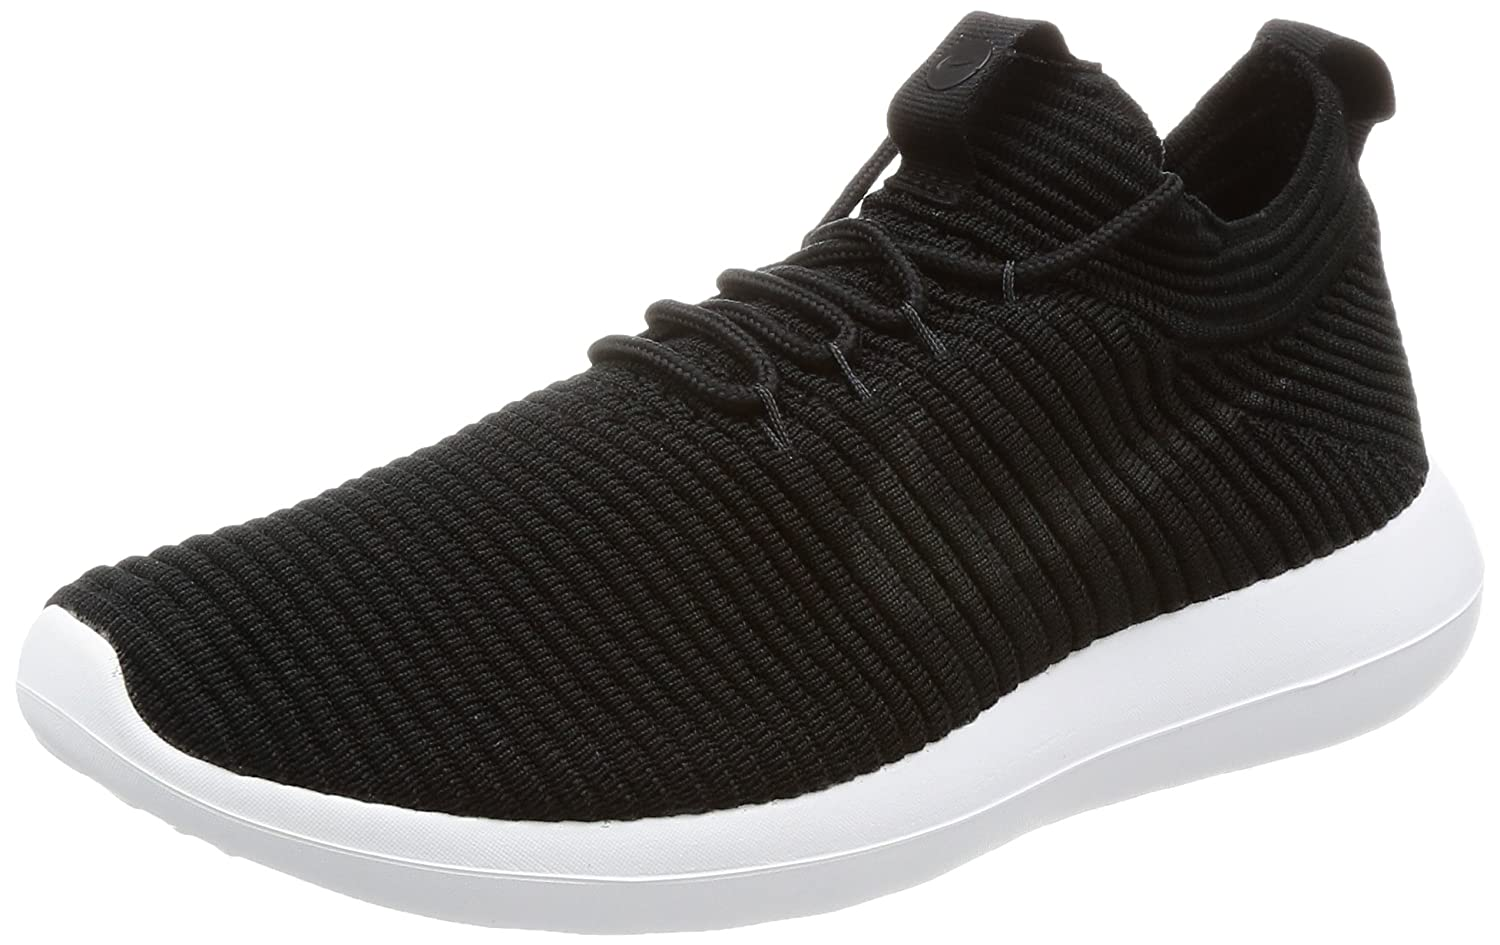 NIKE Women's Roshe Two Flyknit V2 Running Shoe B004I5860Y 6.5 B(M) US|Black / Anthracite-black-white